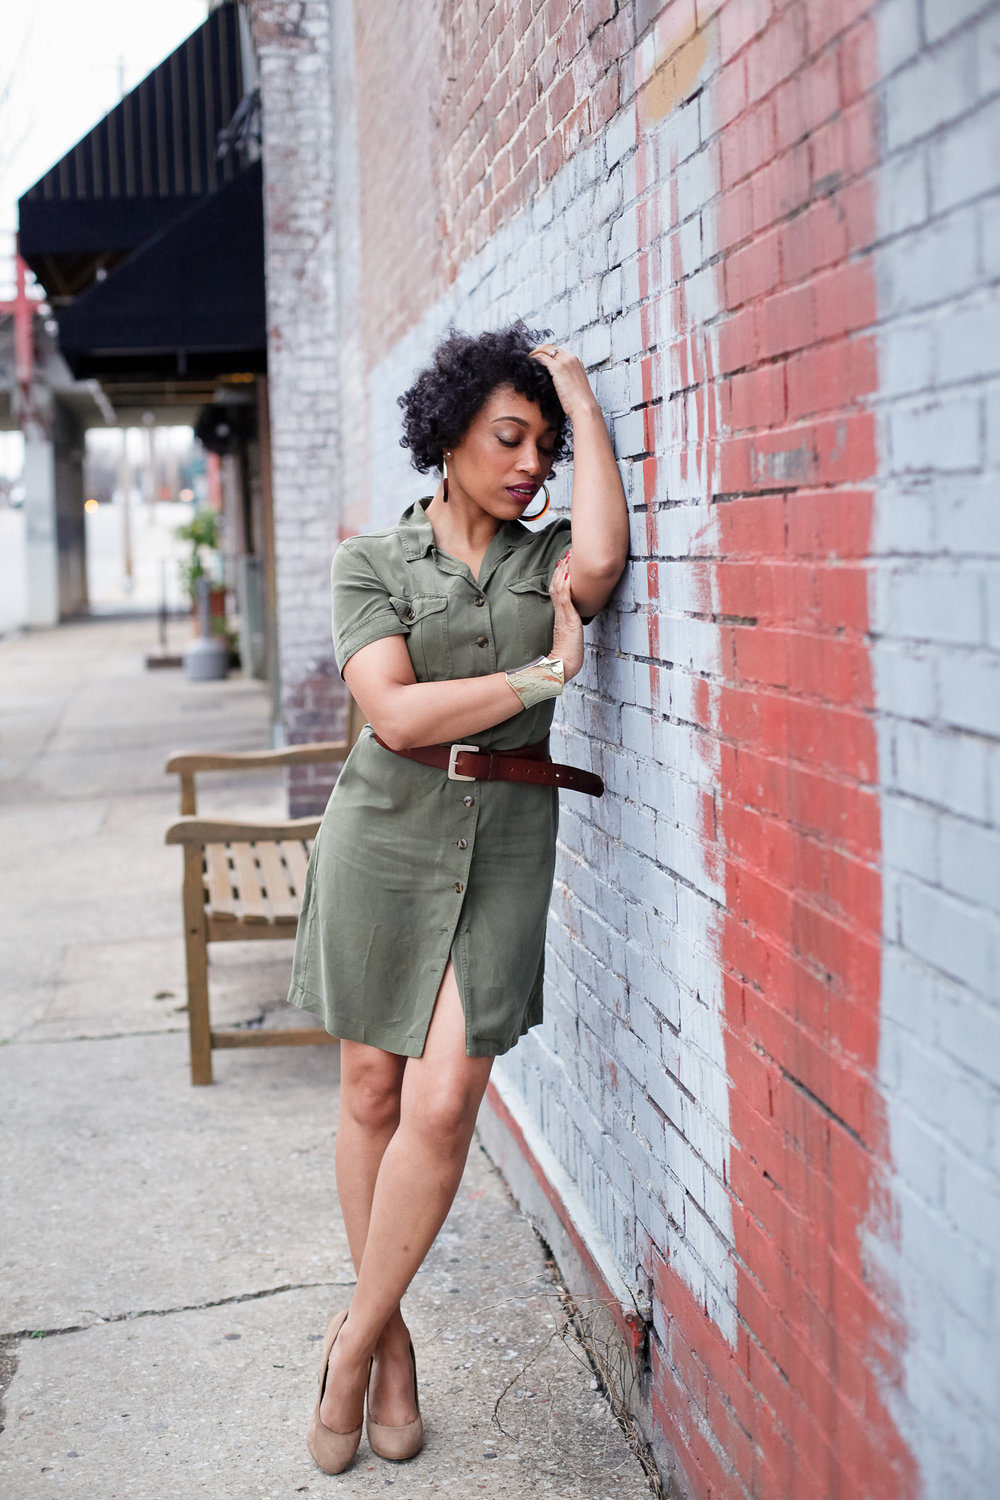 Andrea Fenise Memphis Fashion Blogger shares Turn this Room into an Outfit series